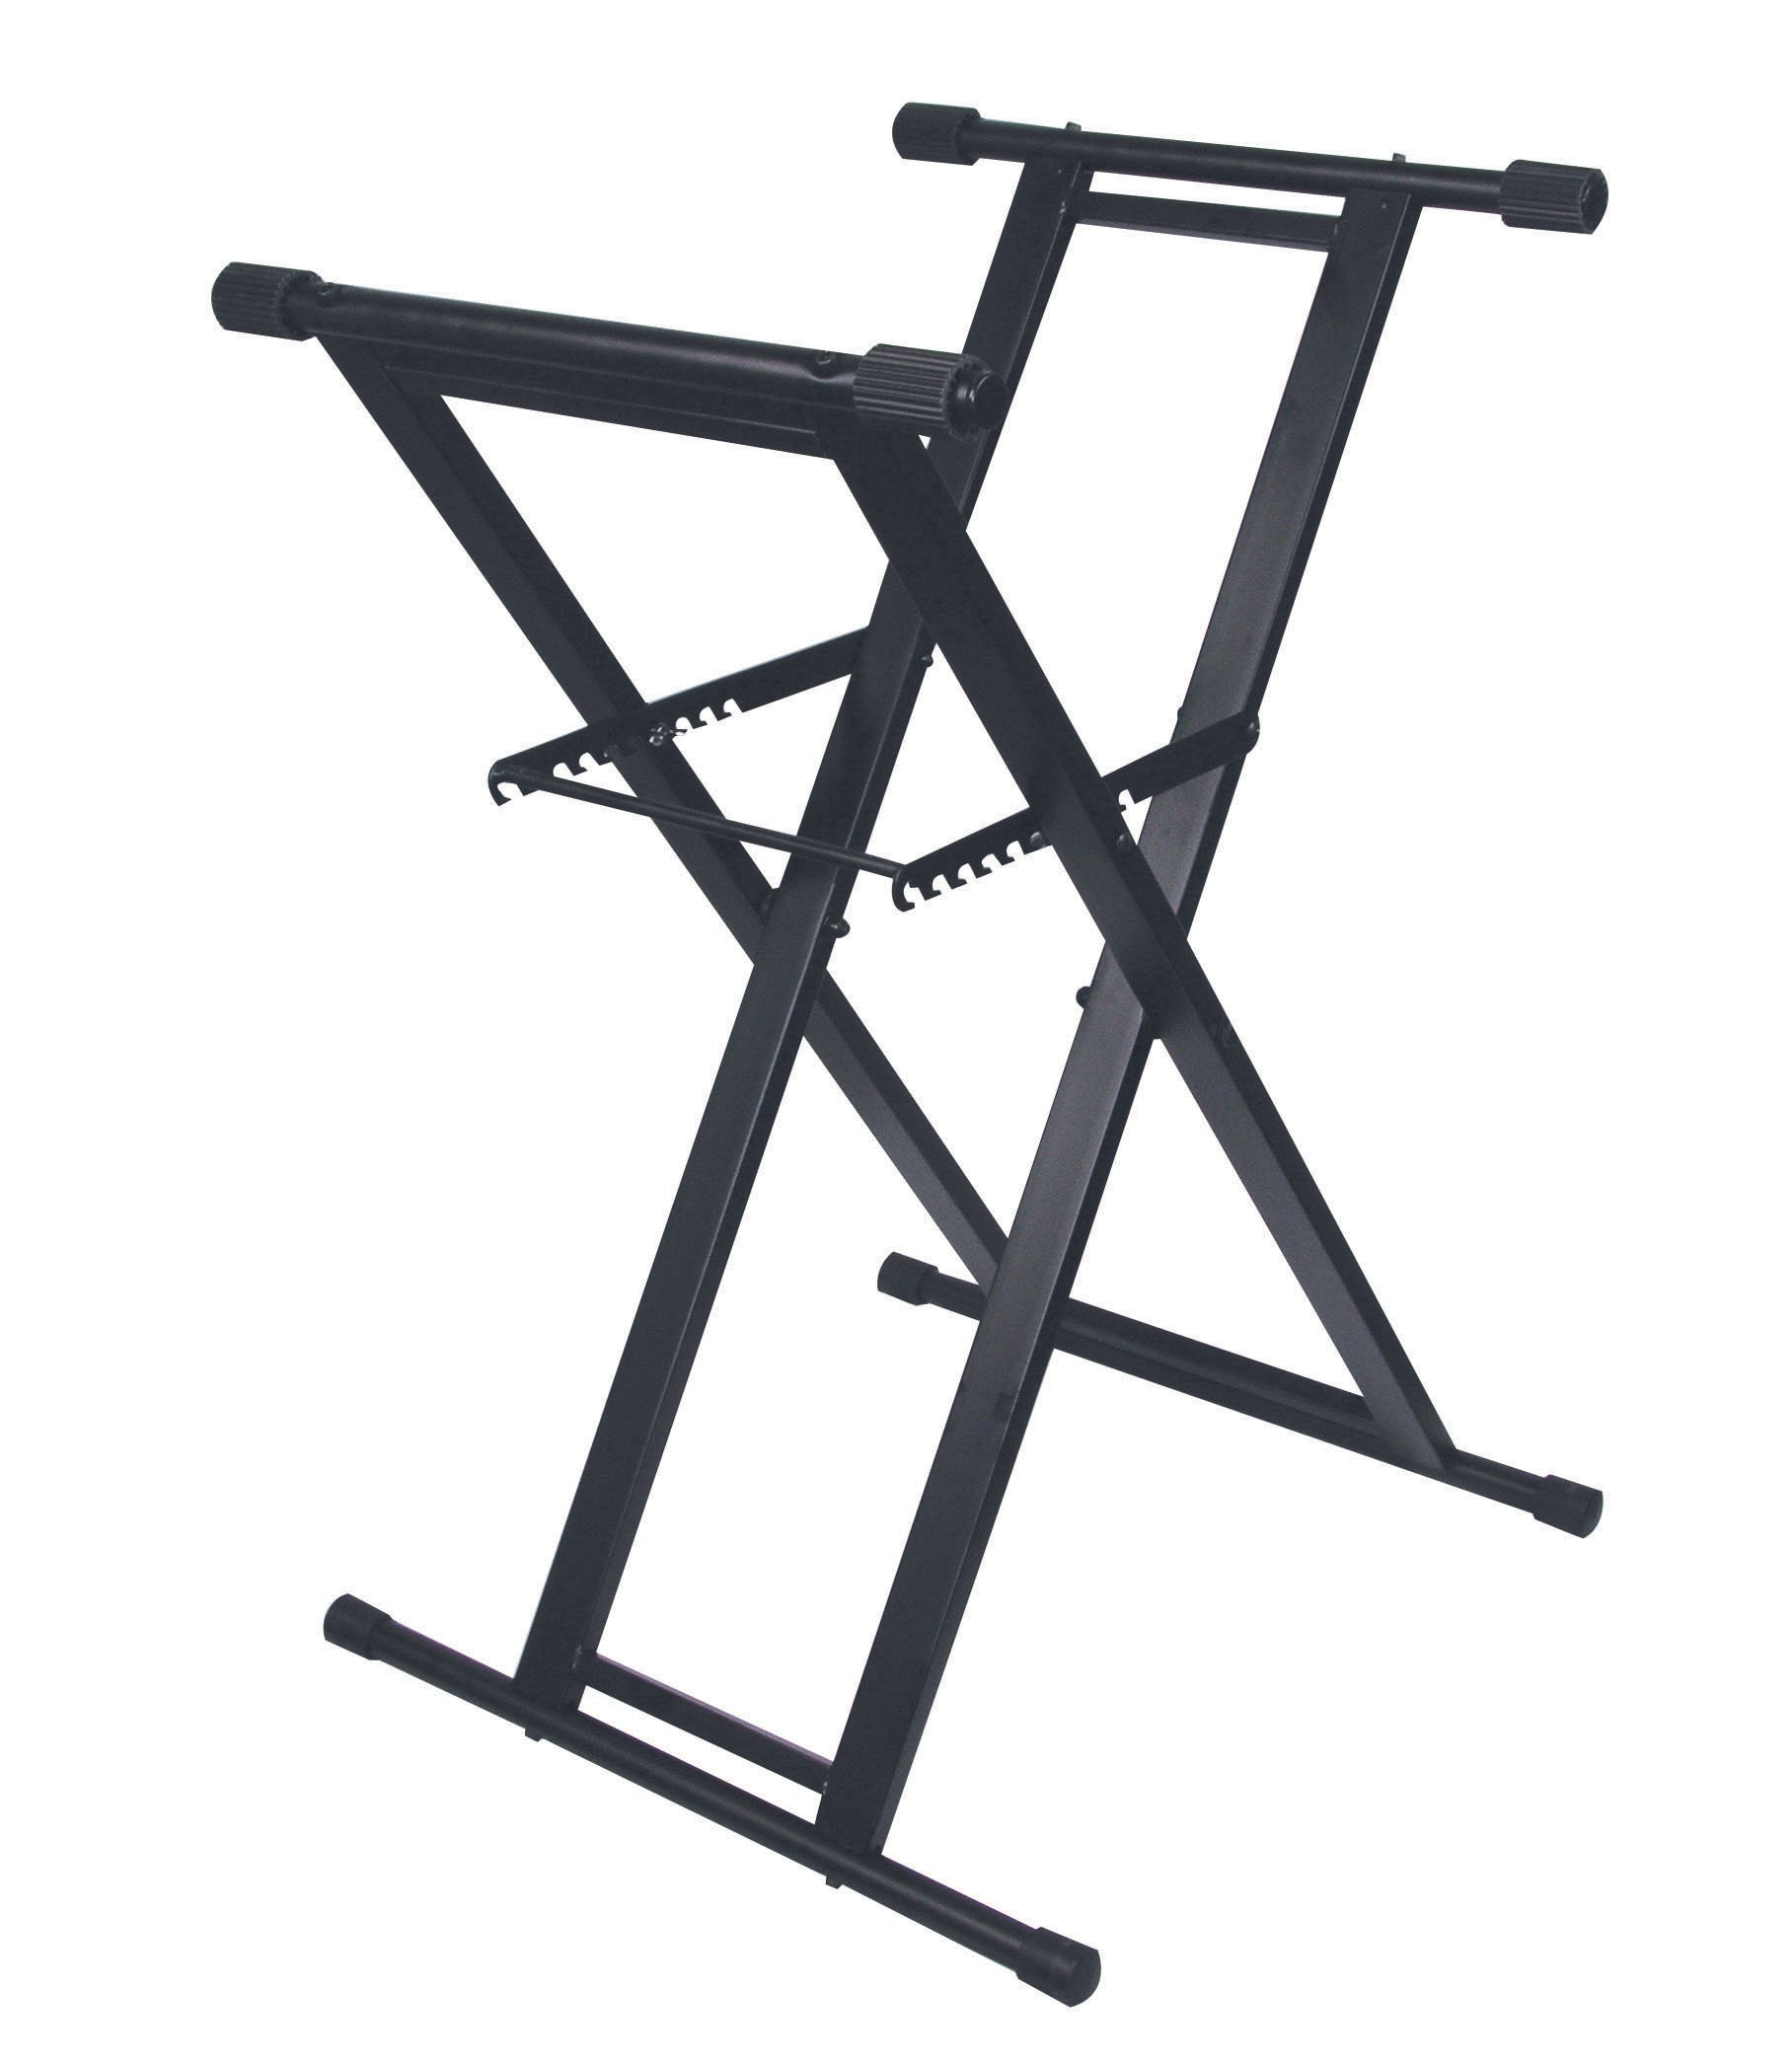 Odyssey LTBXS X-Stand: Double Braced Dj Coffin And Keyboard Stand